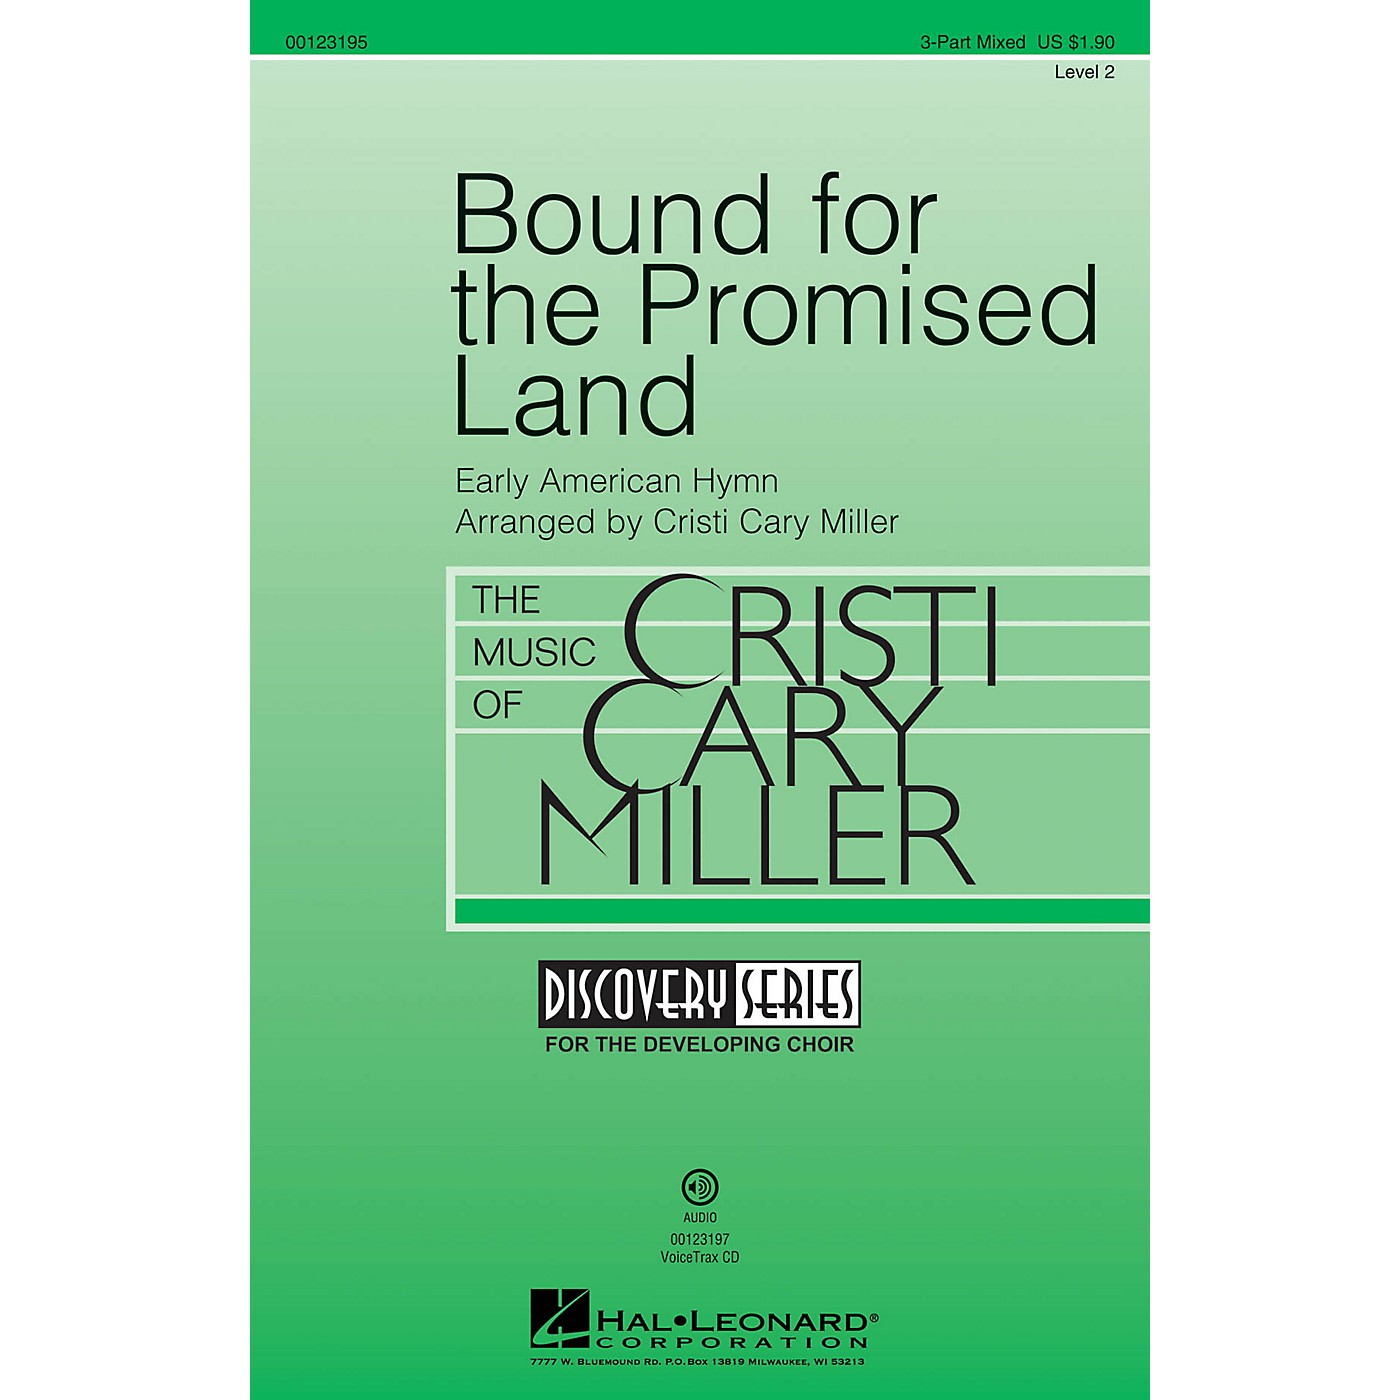 Hal Leonard Bound for the Promised Land (Discovery Level 2) VoiceTrax CD Arranged by Cristi Cary Miller thumbnail